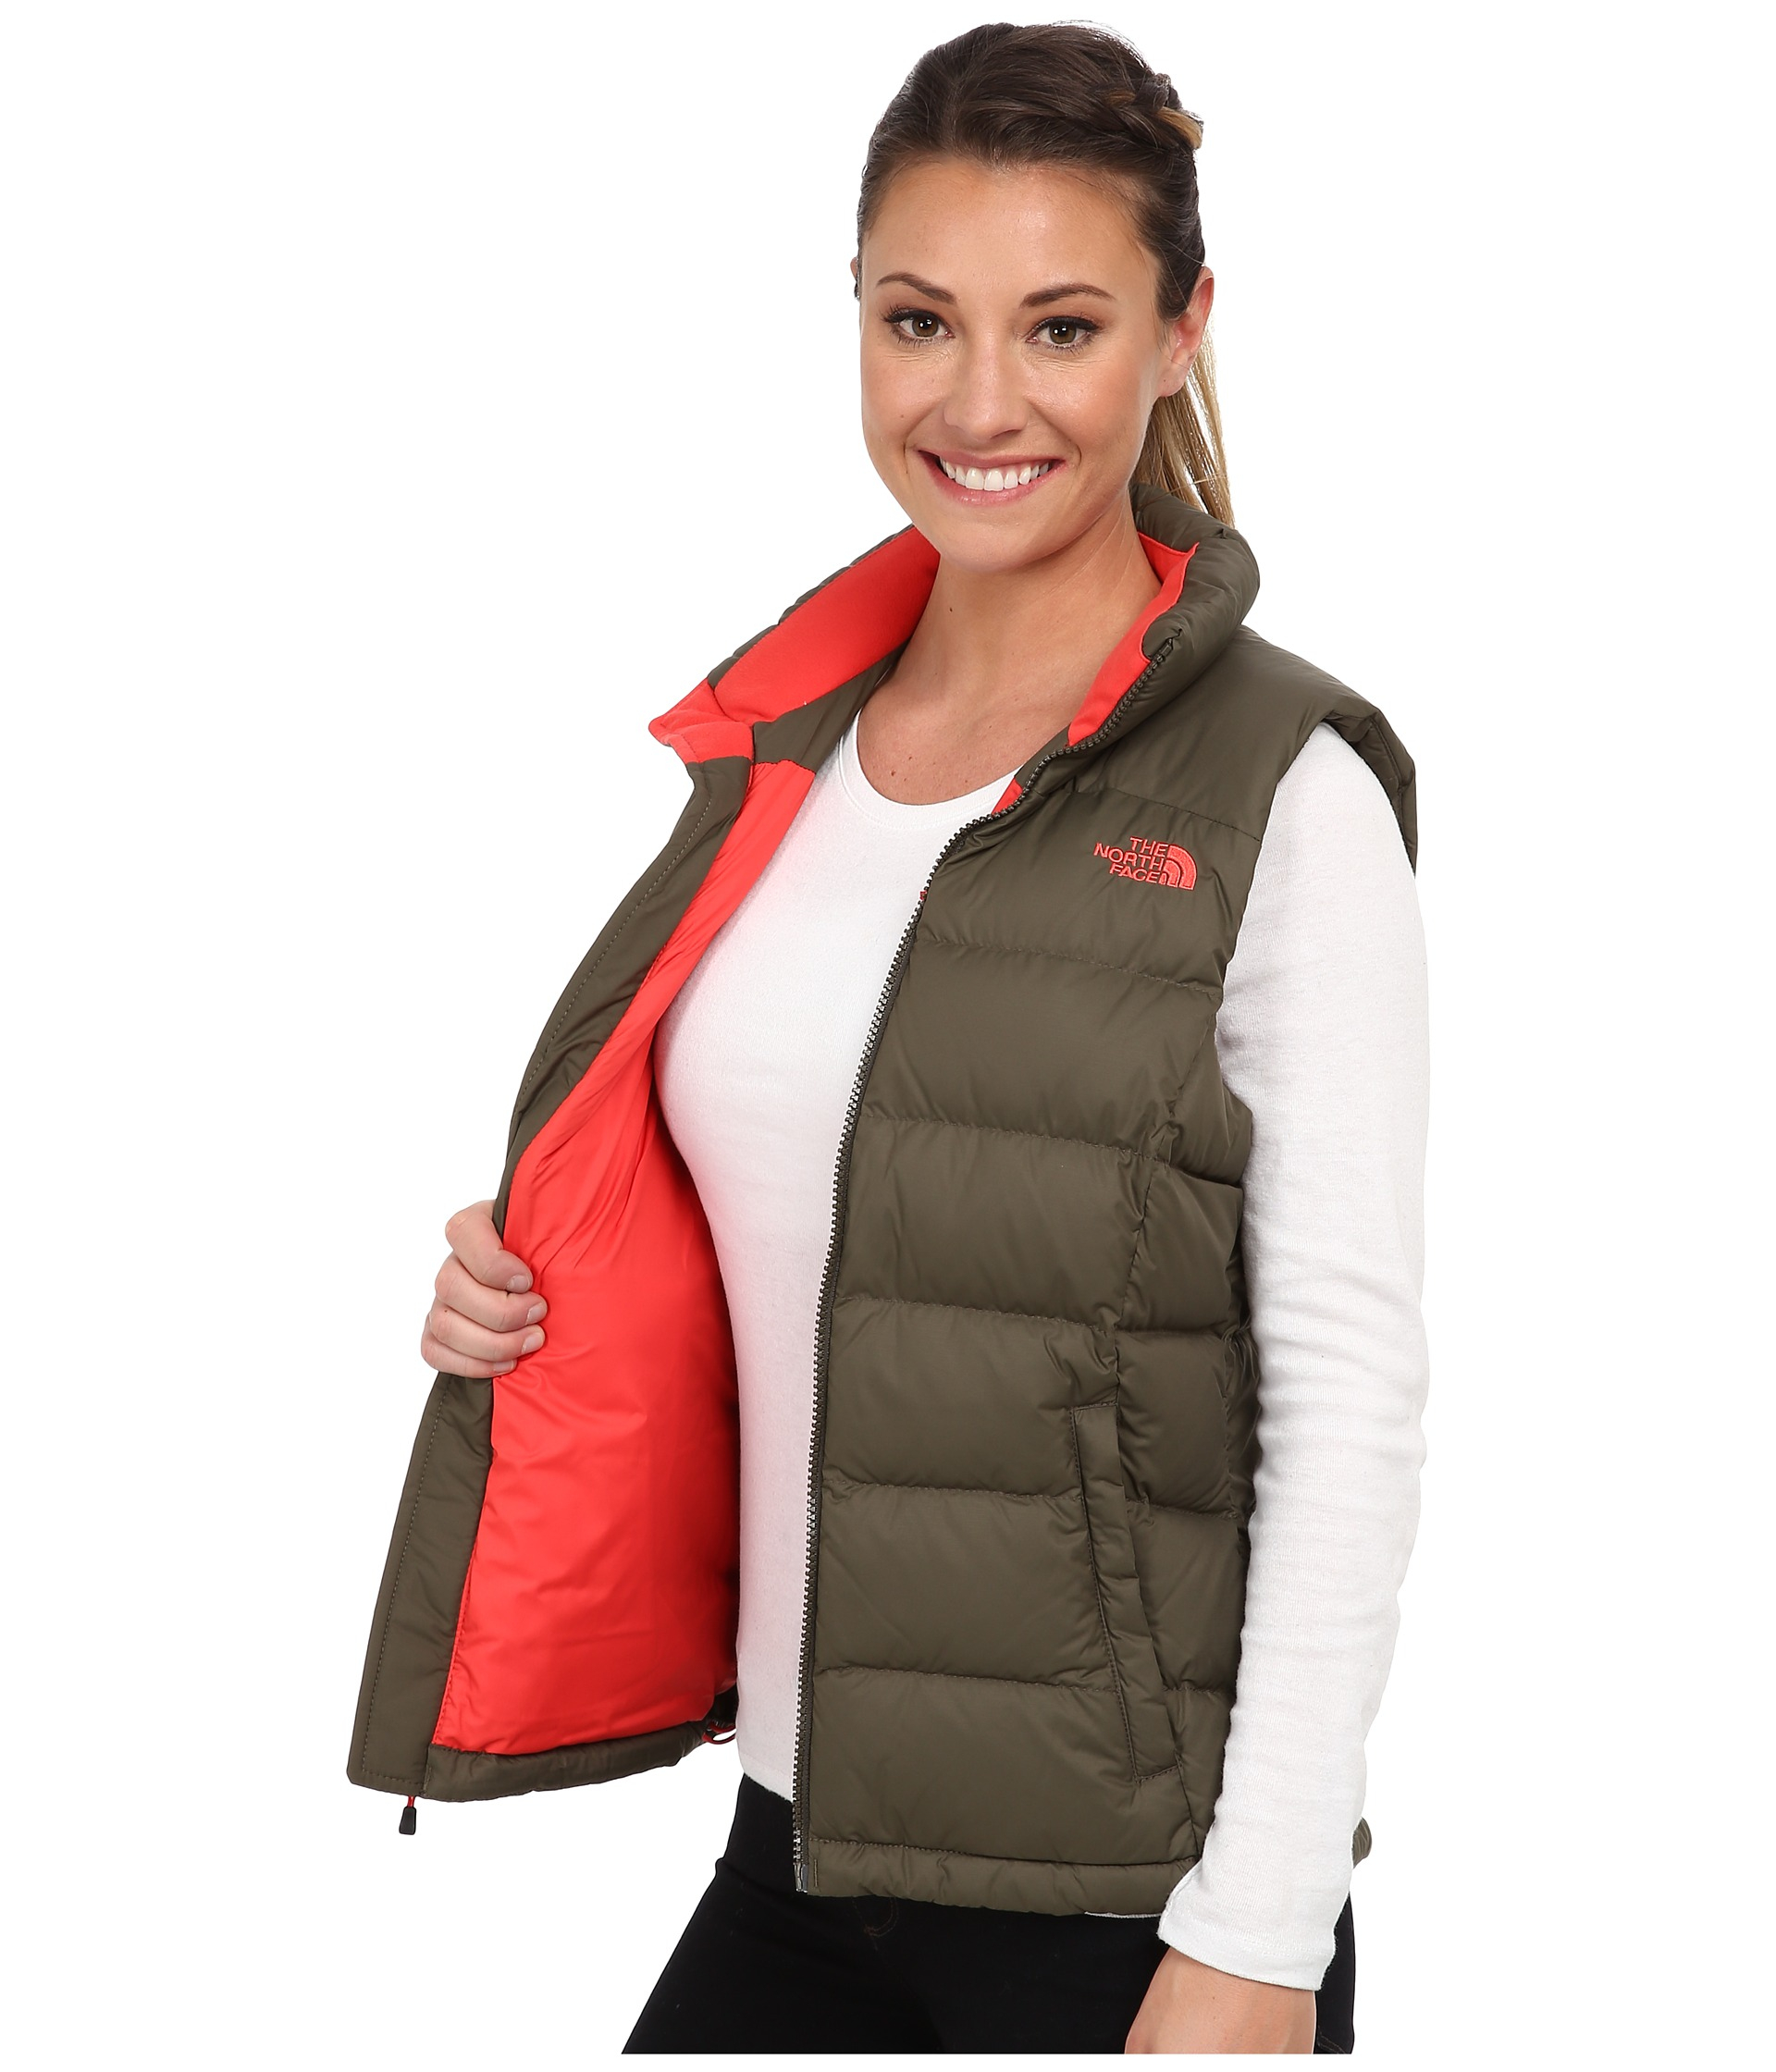 ... discount lyst the north face nuptse 2 vest in brown 4943f 22b0f 7fde570a0